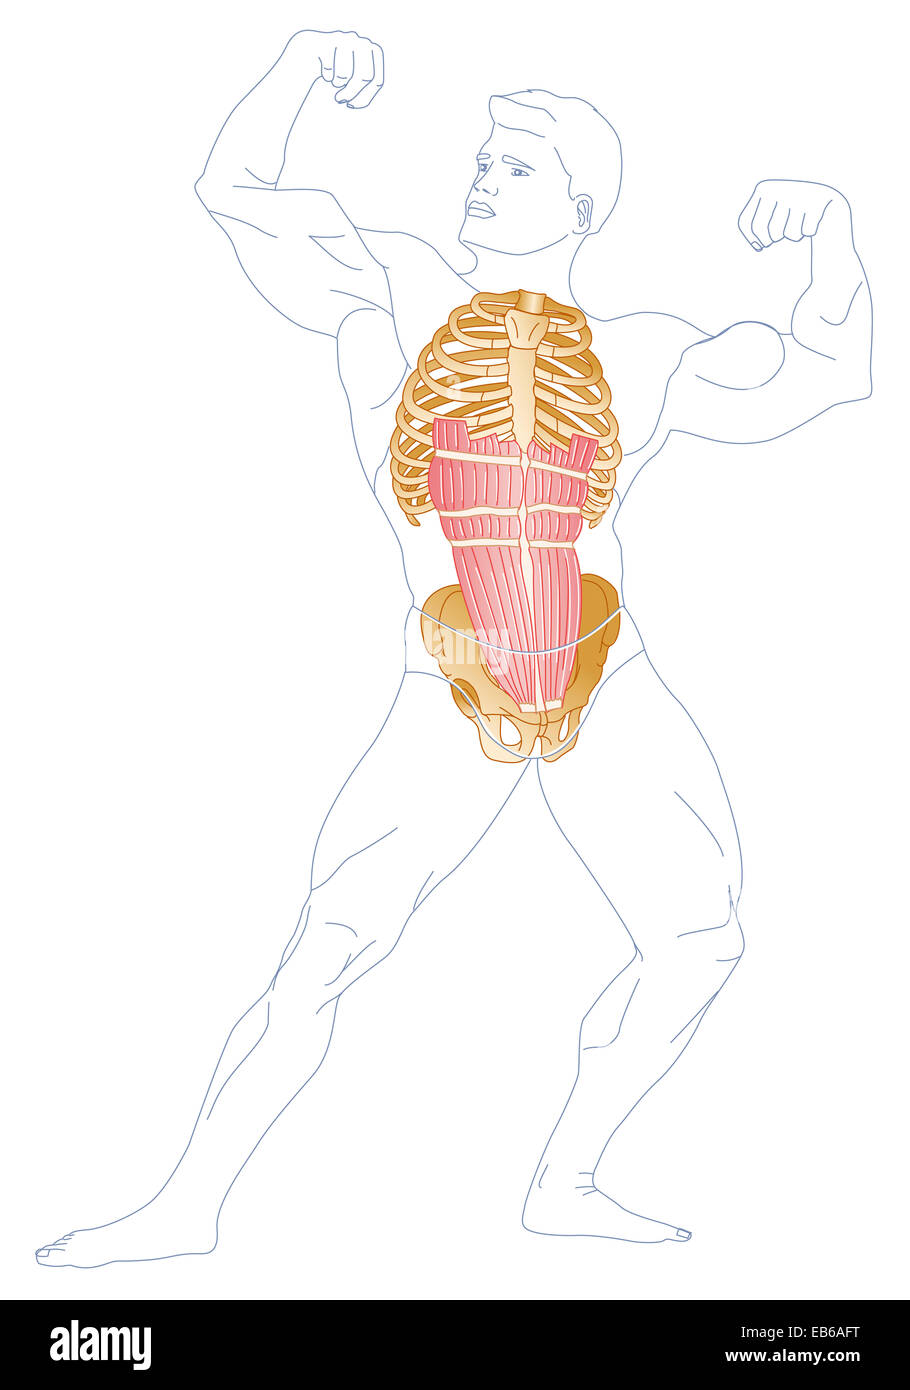 ABDOMINAL MUSCLES, DRAWING - Stock Image